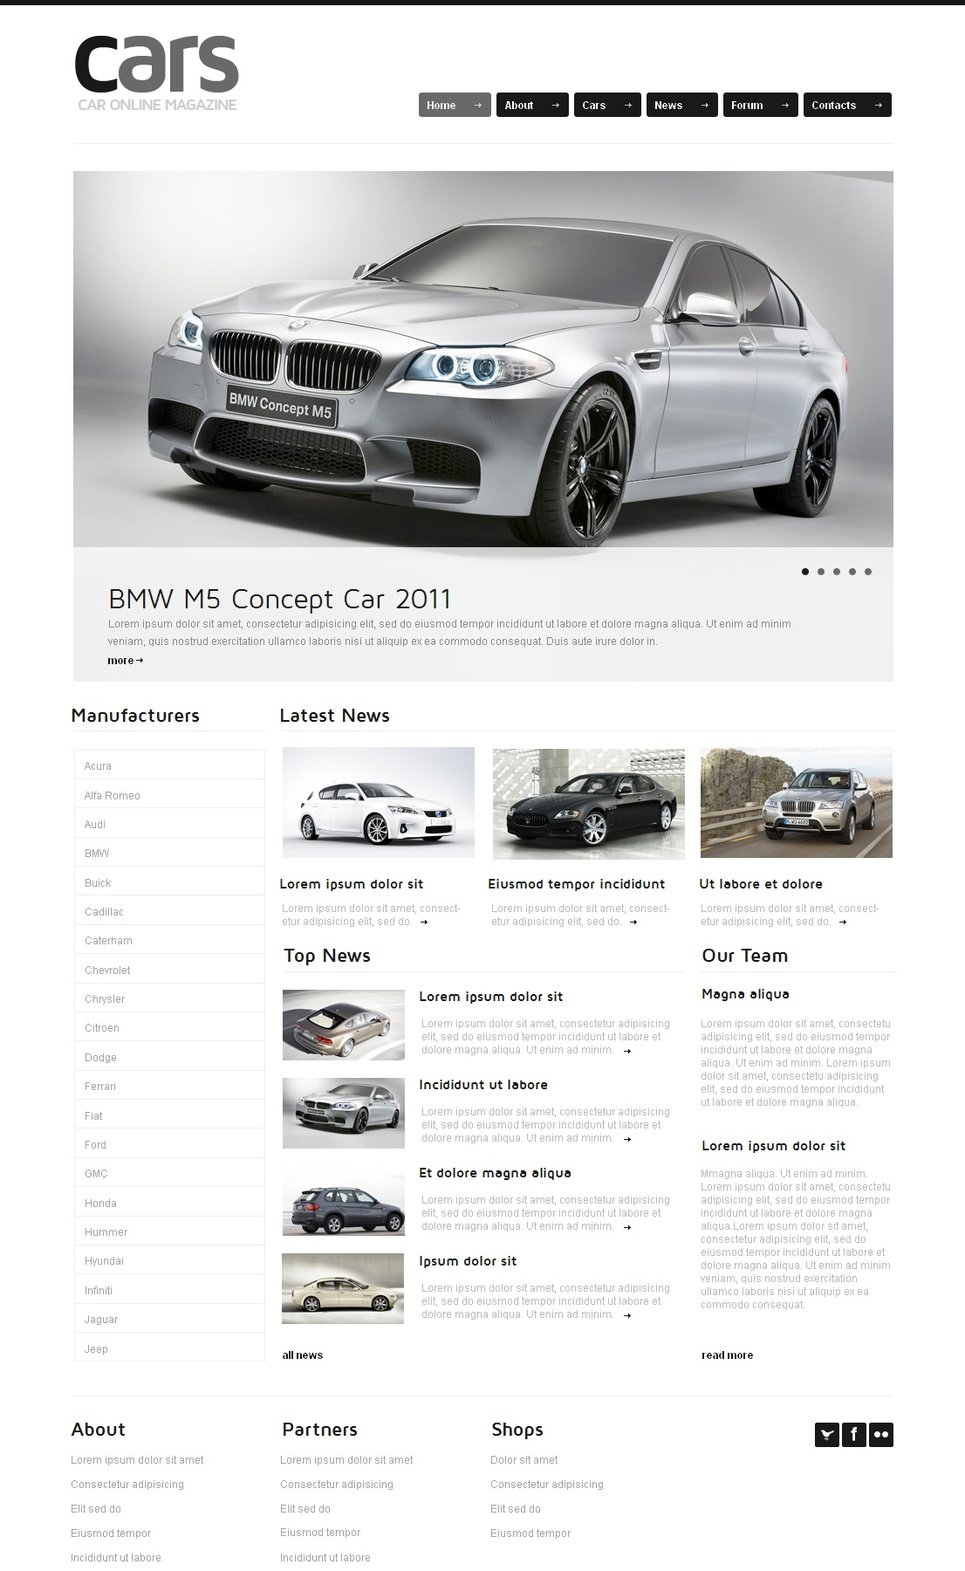 Cars Web Template on White Background - image